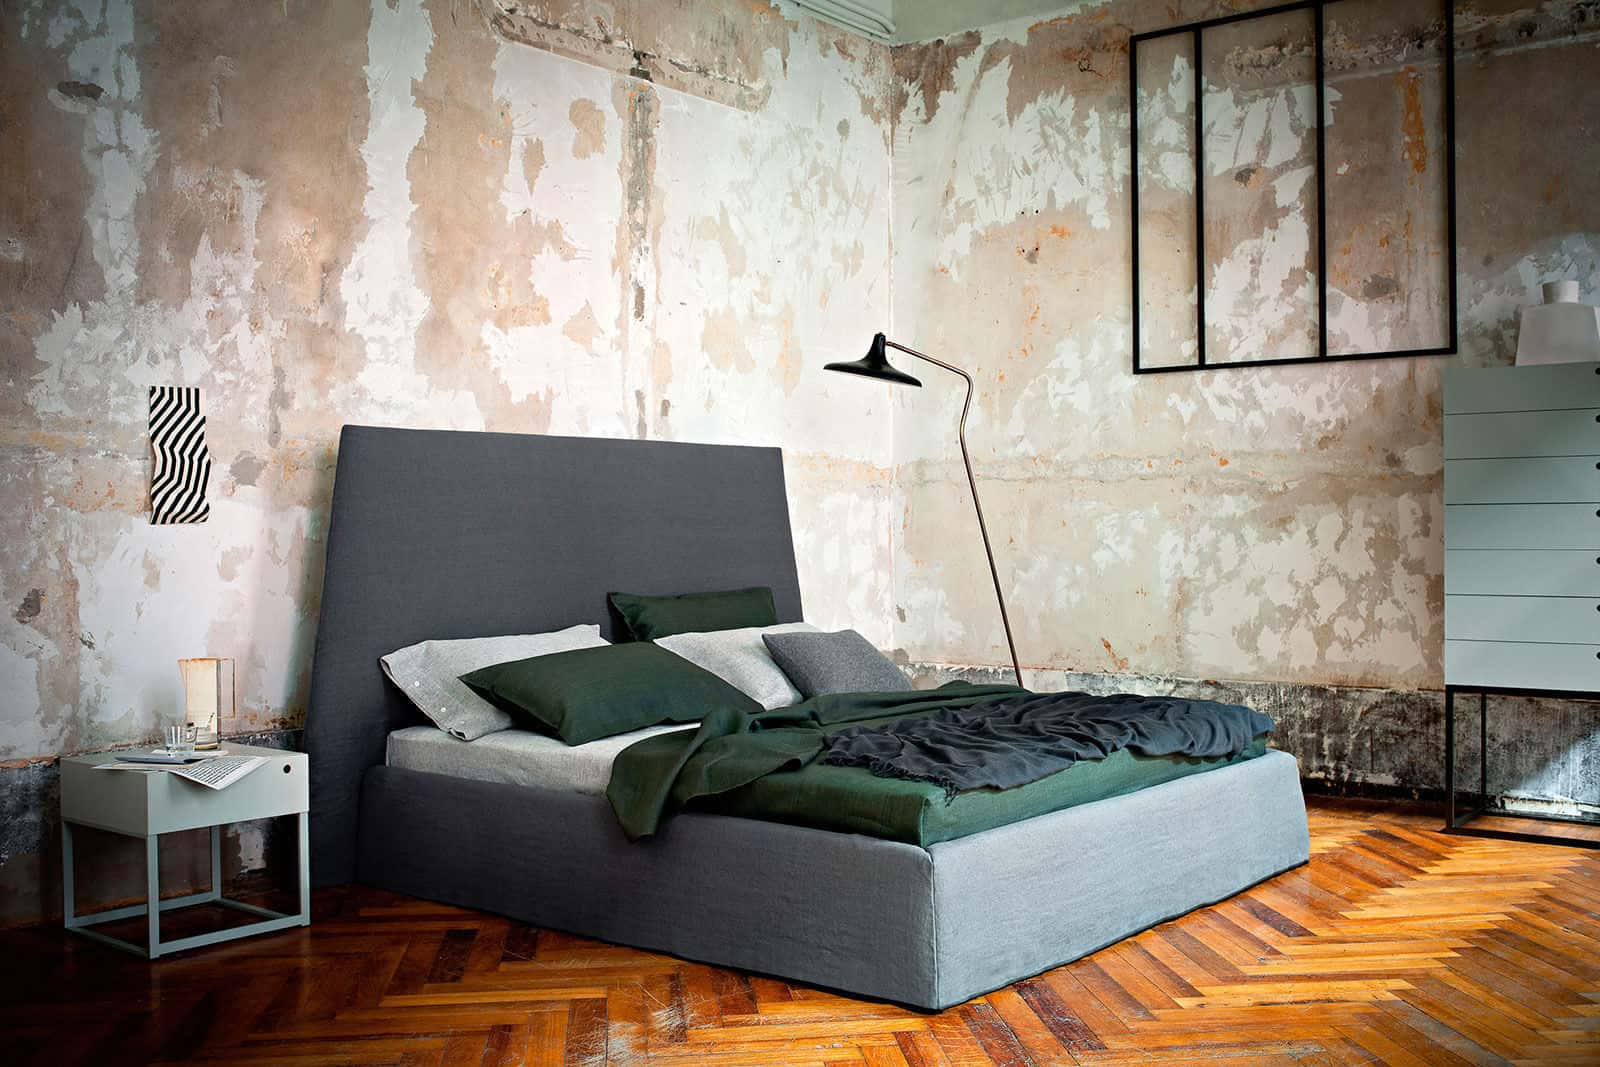 stylish wall pictures ideas to solution how decorations best blank design for decor bedroom decorate